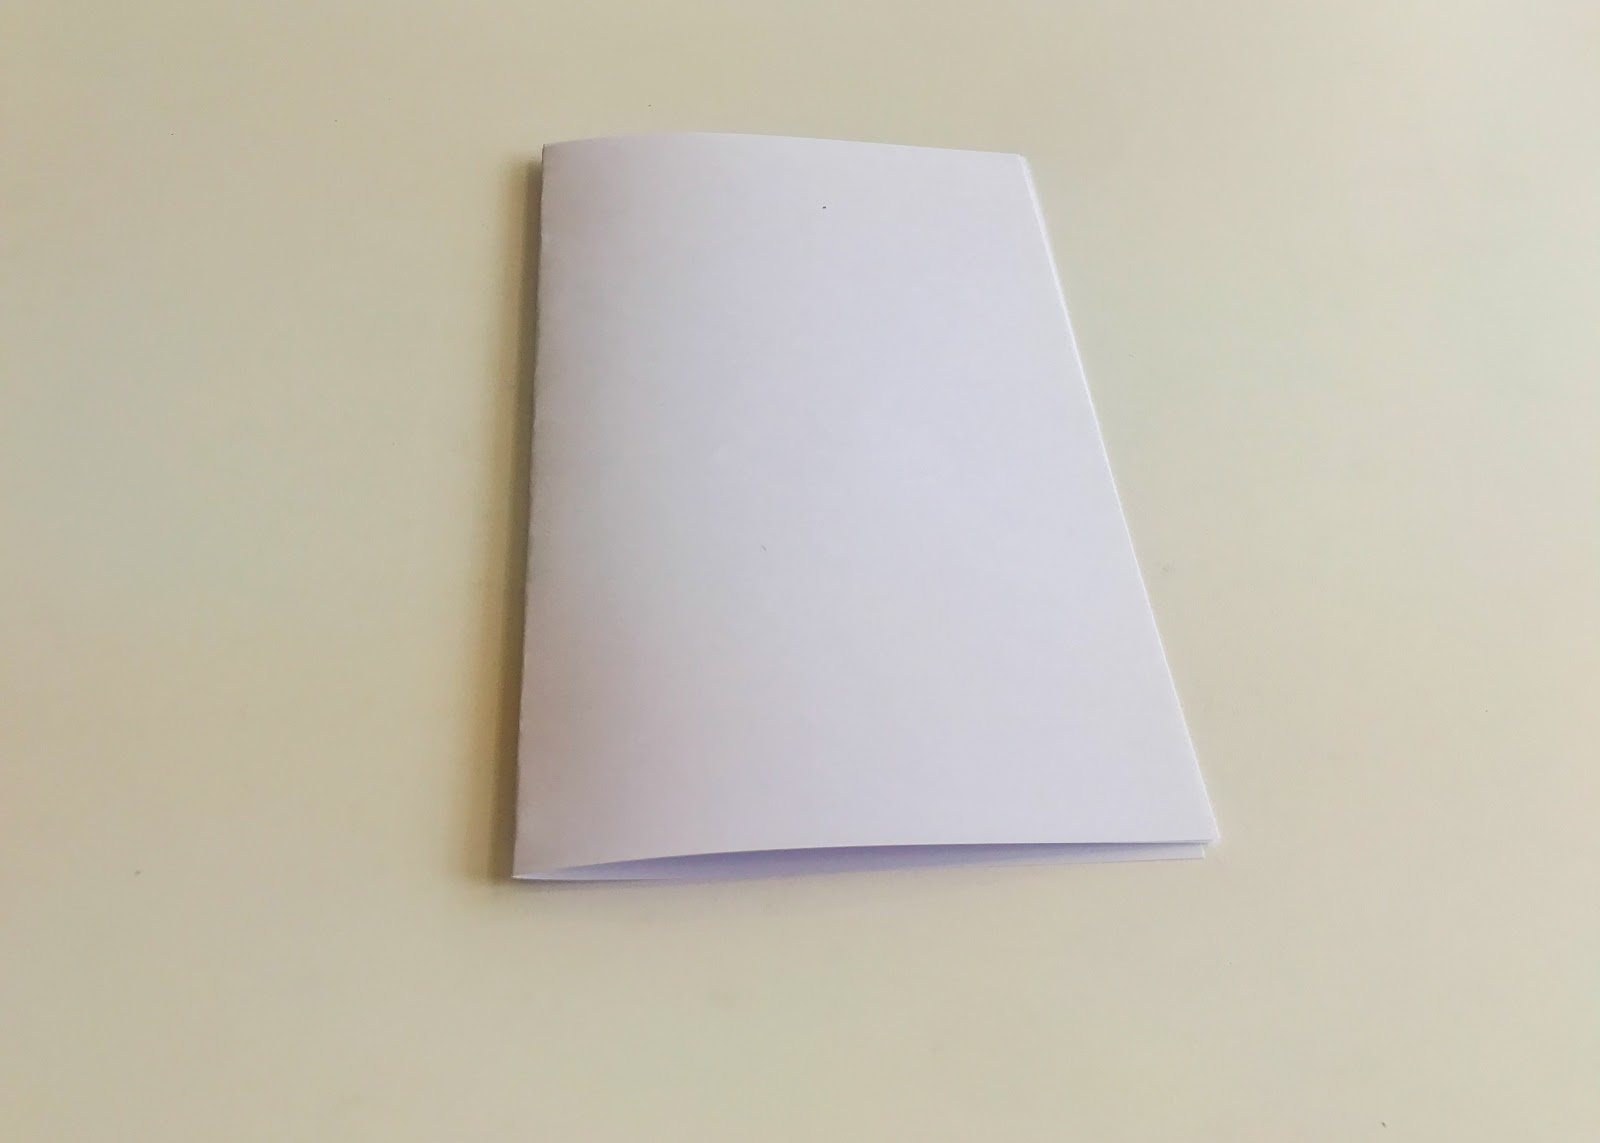 Image of two pieces of paper folded in half.